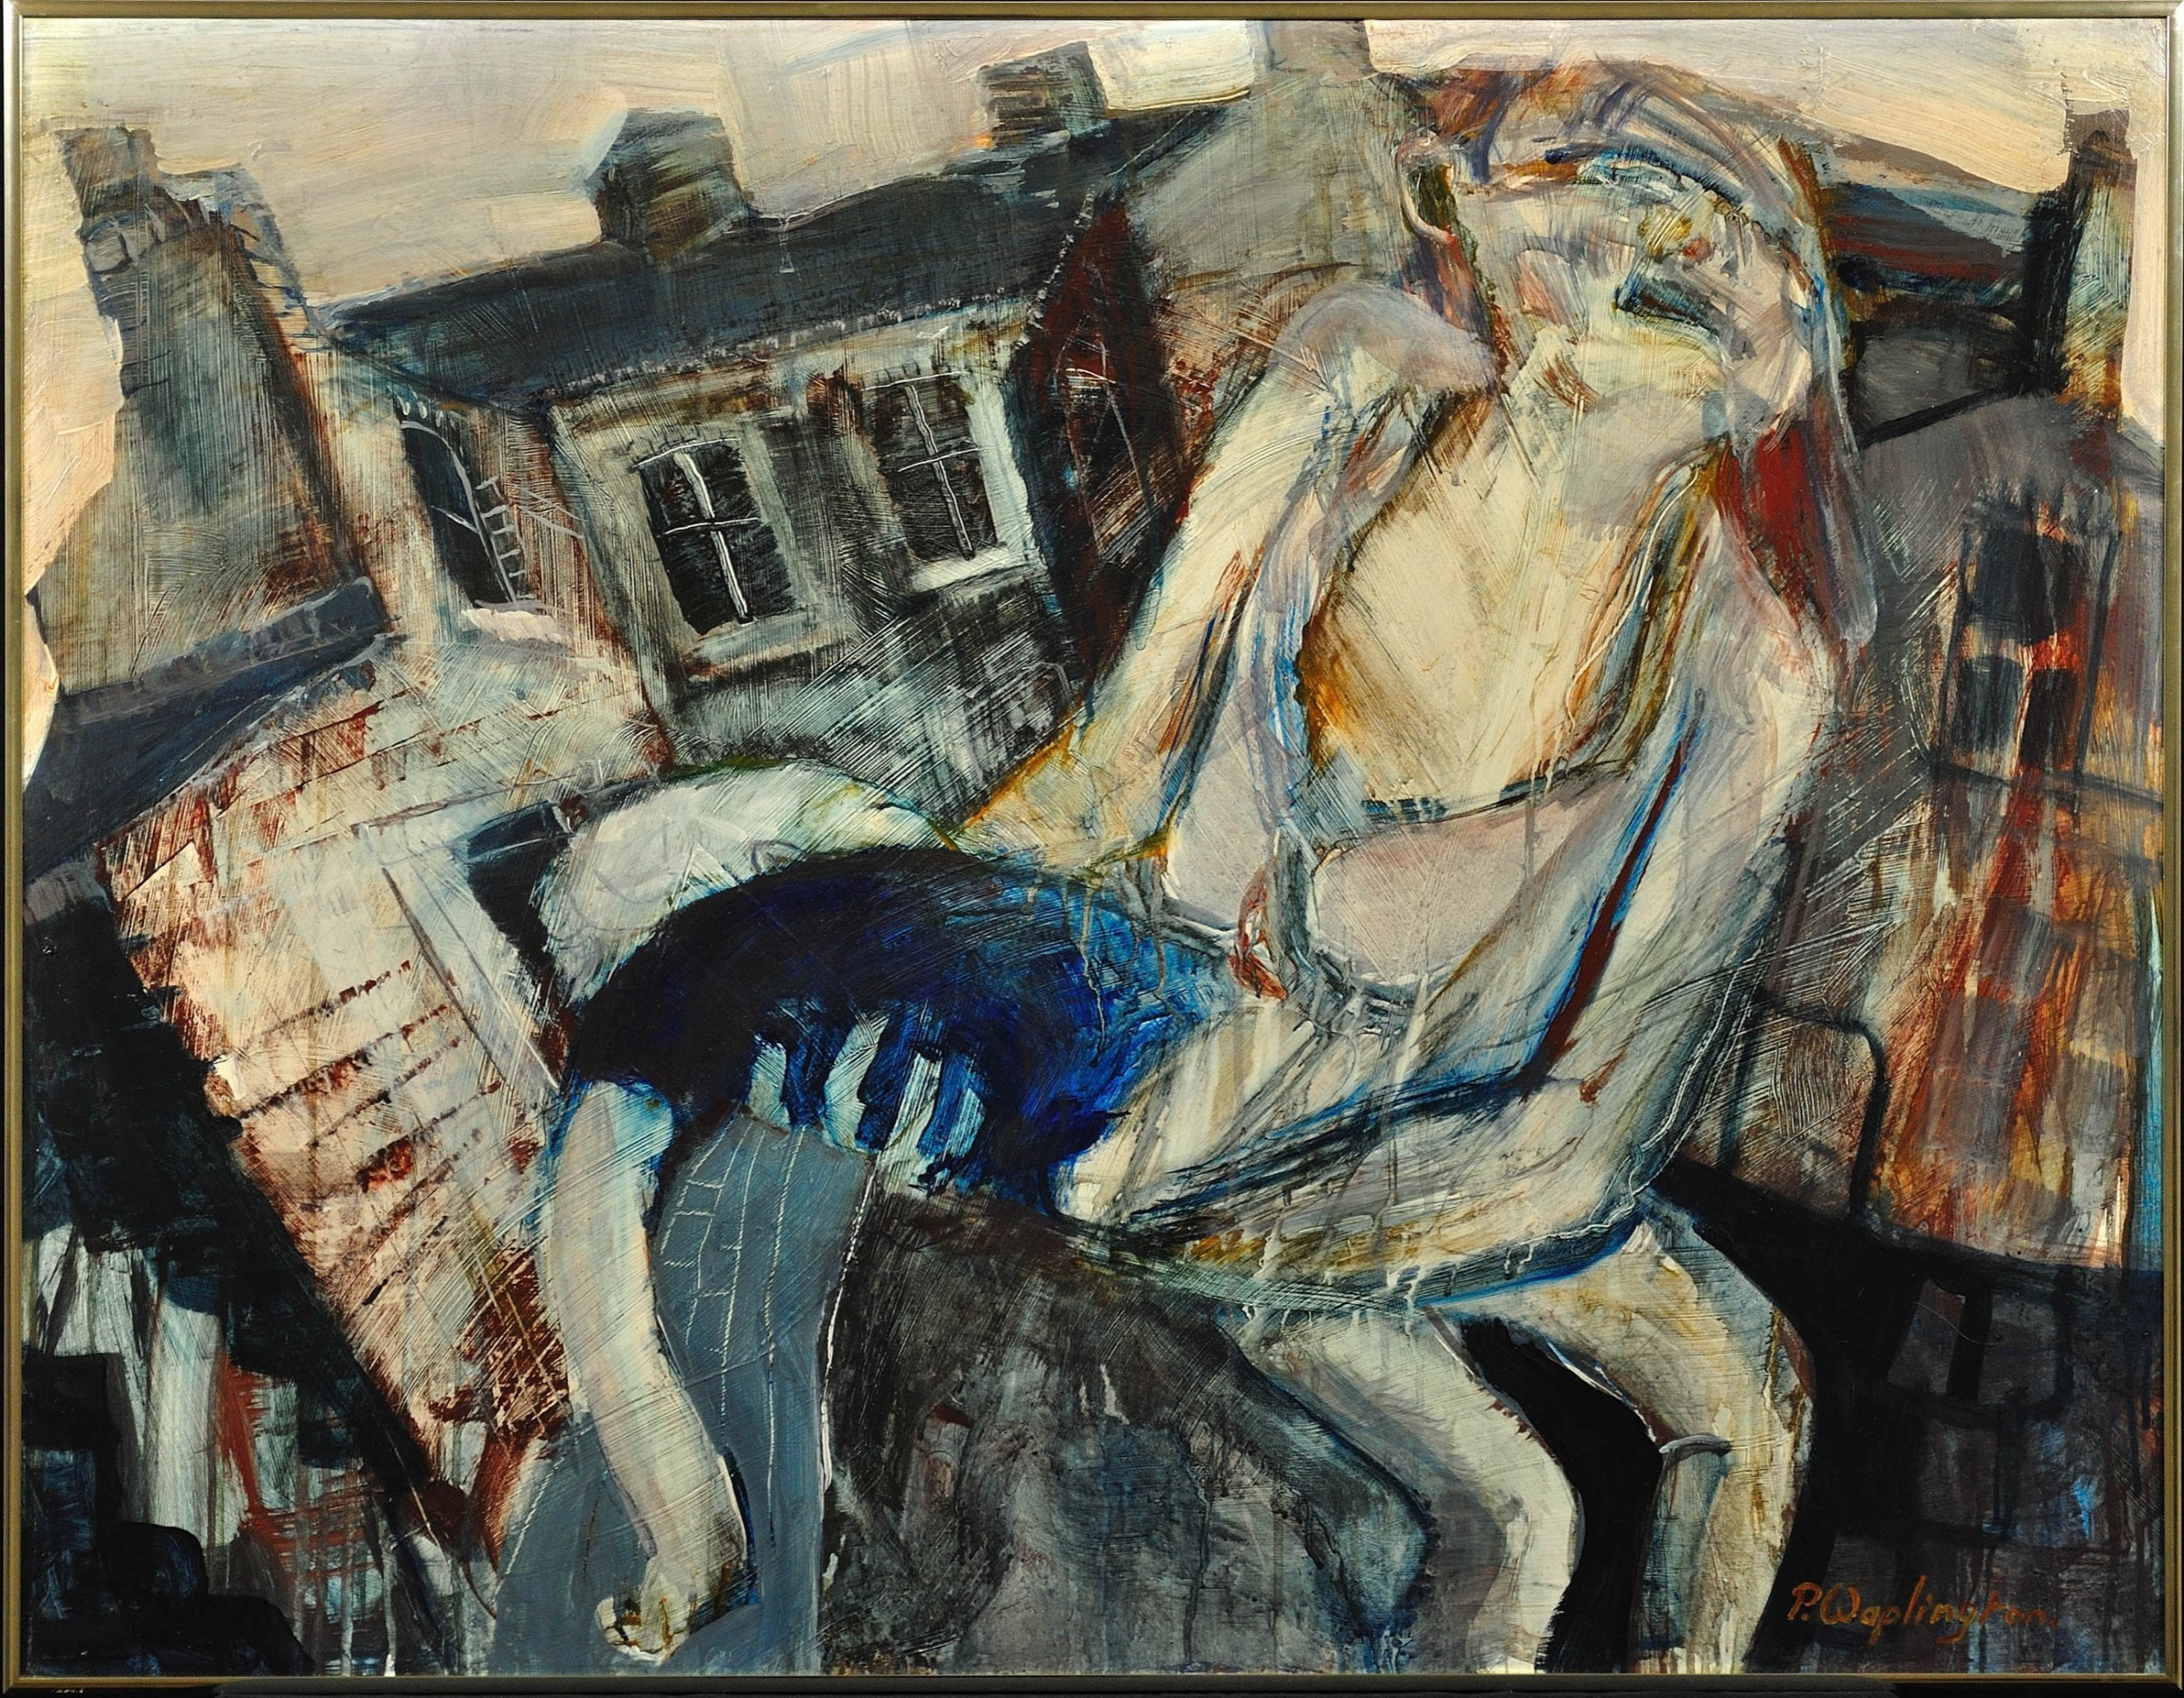 paul anthony waplington b1938 mother with injured child forest fields nottingham 1968 mixed media on board